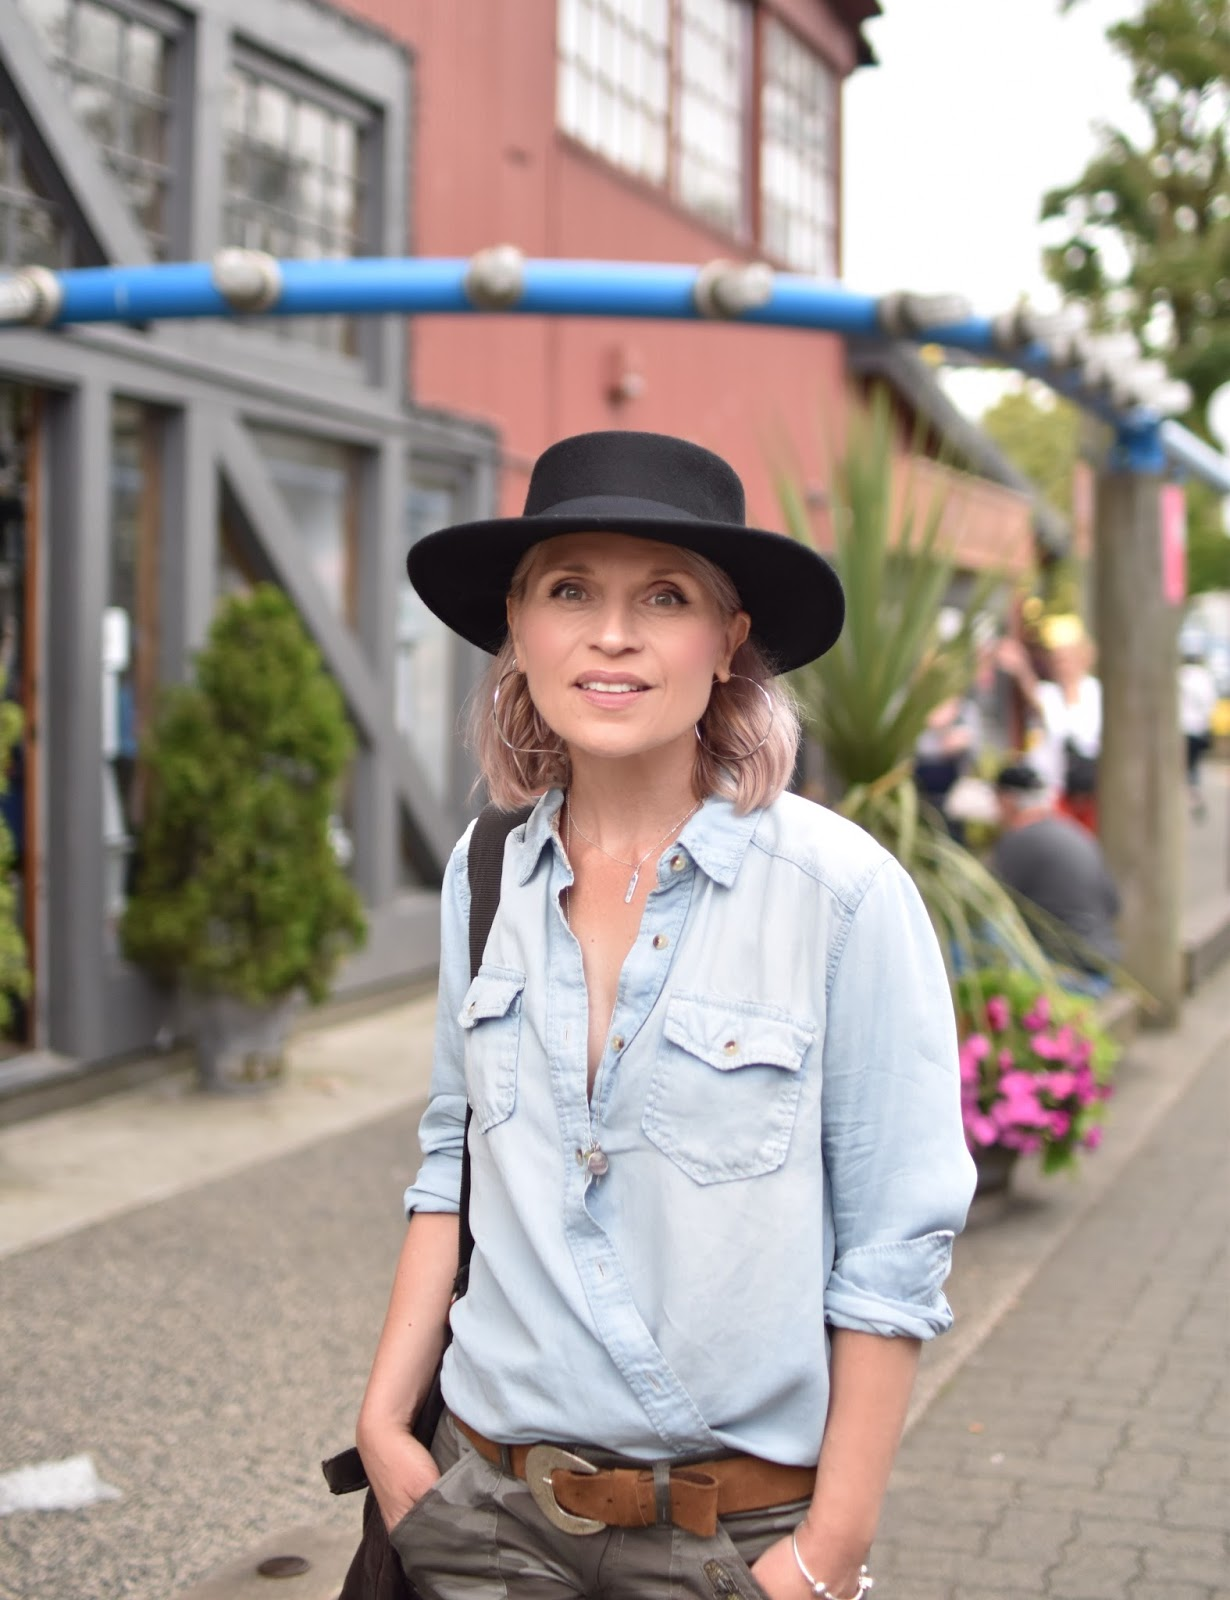 Monika Faulkner personal style inspiration - camo pants, chambray shirt, Lucky Brand bowler hat